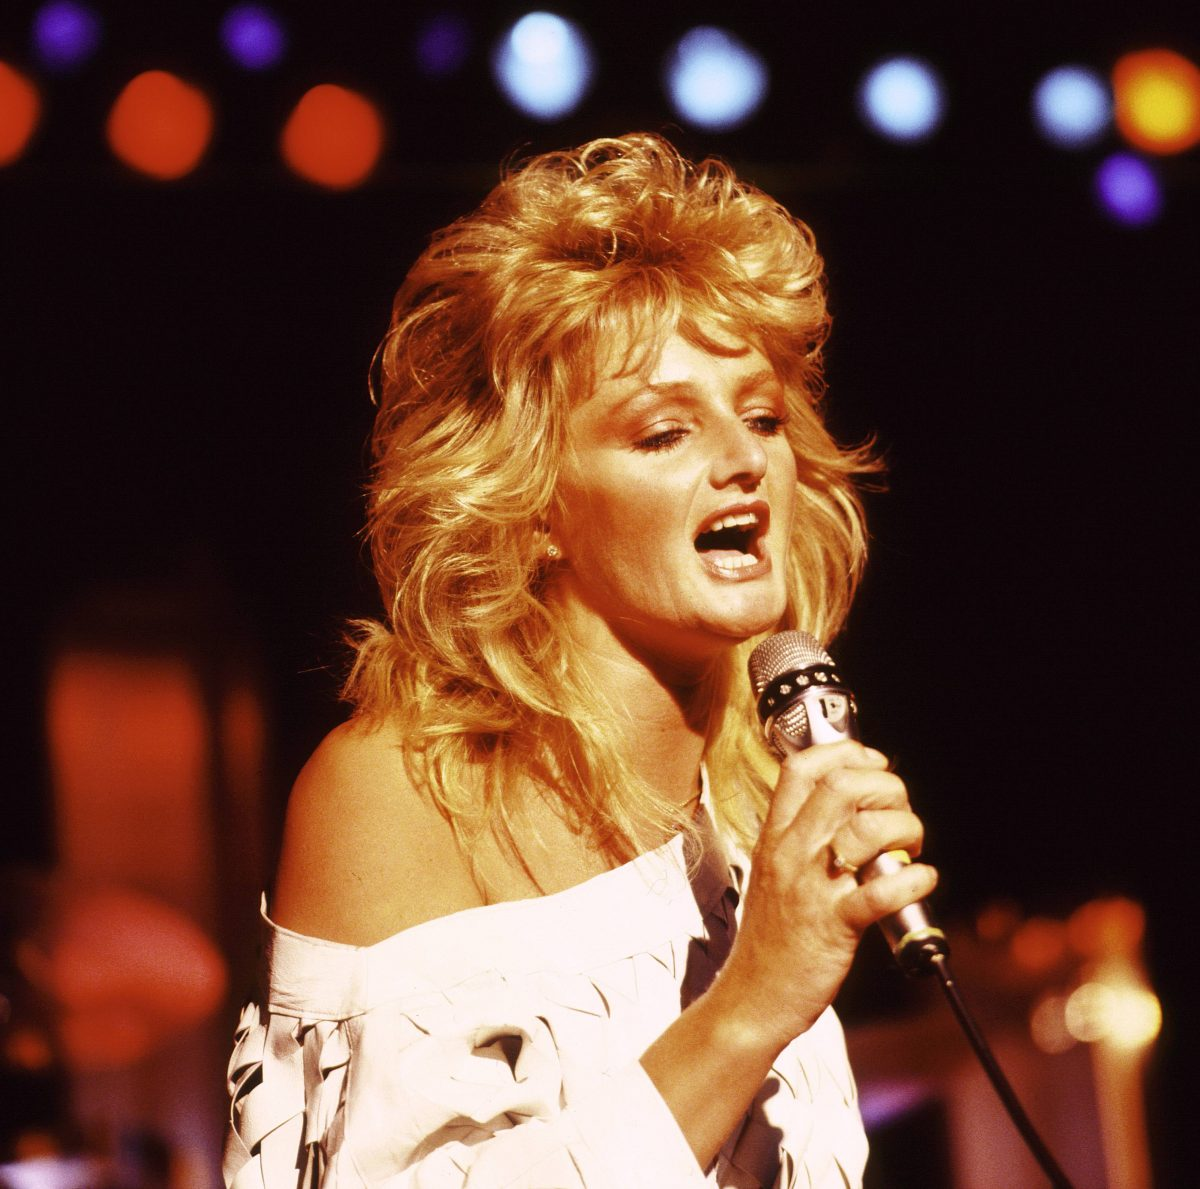 Bonnie Tyler with a microphone